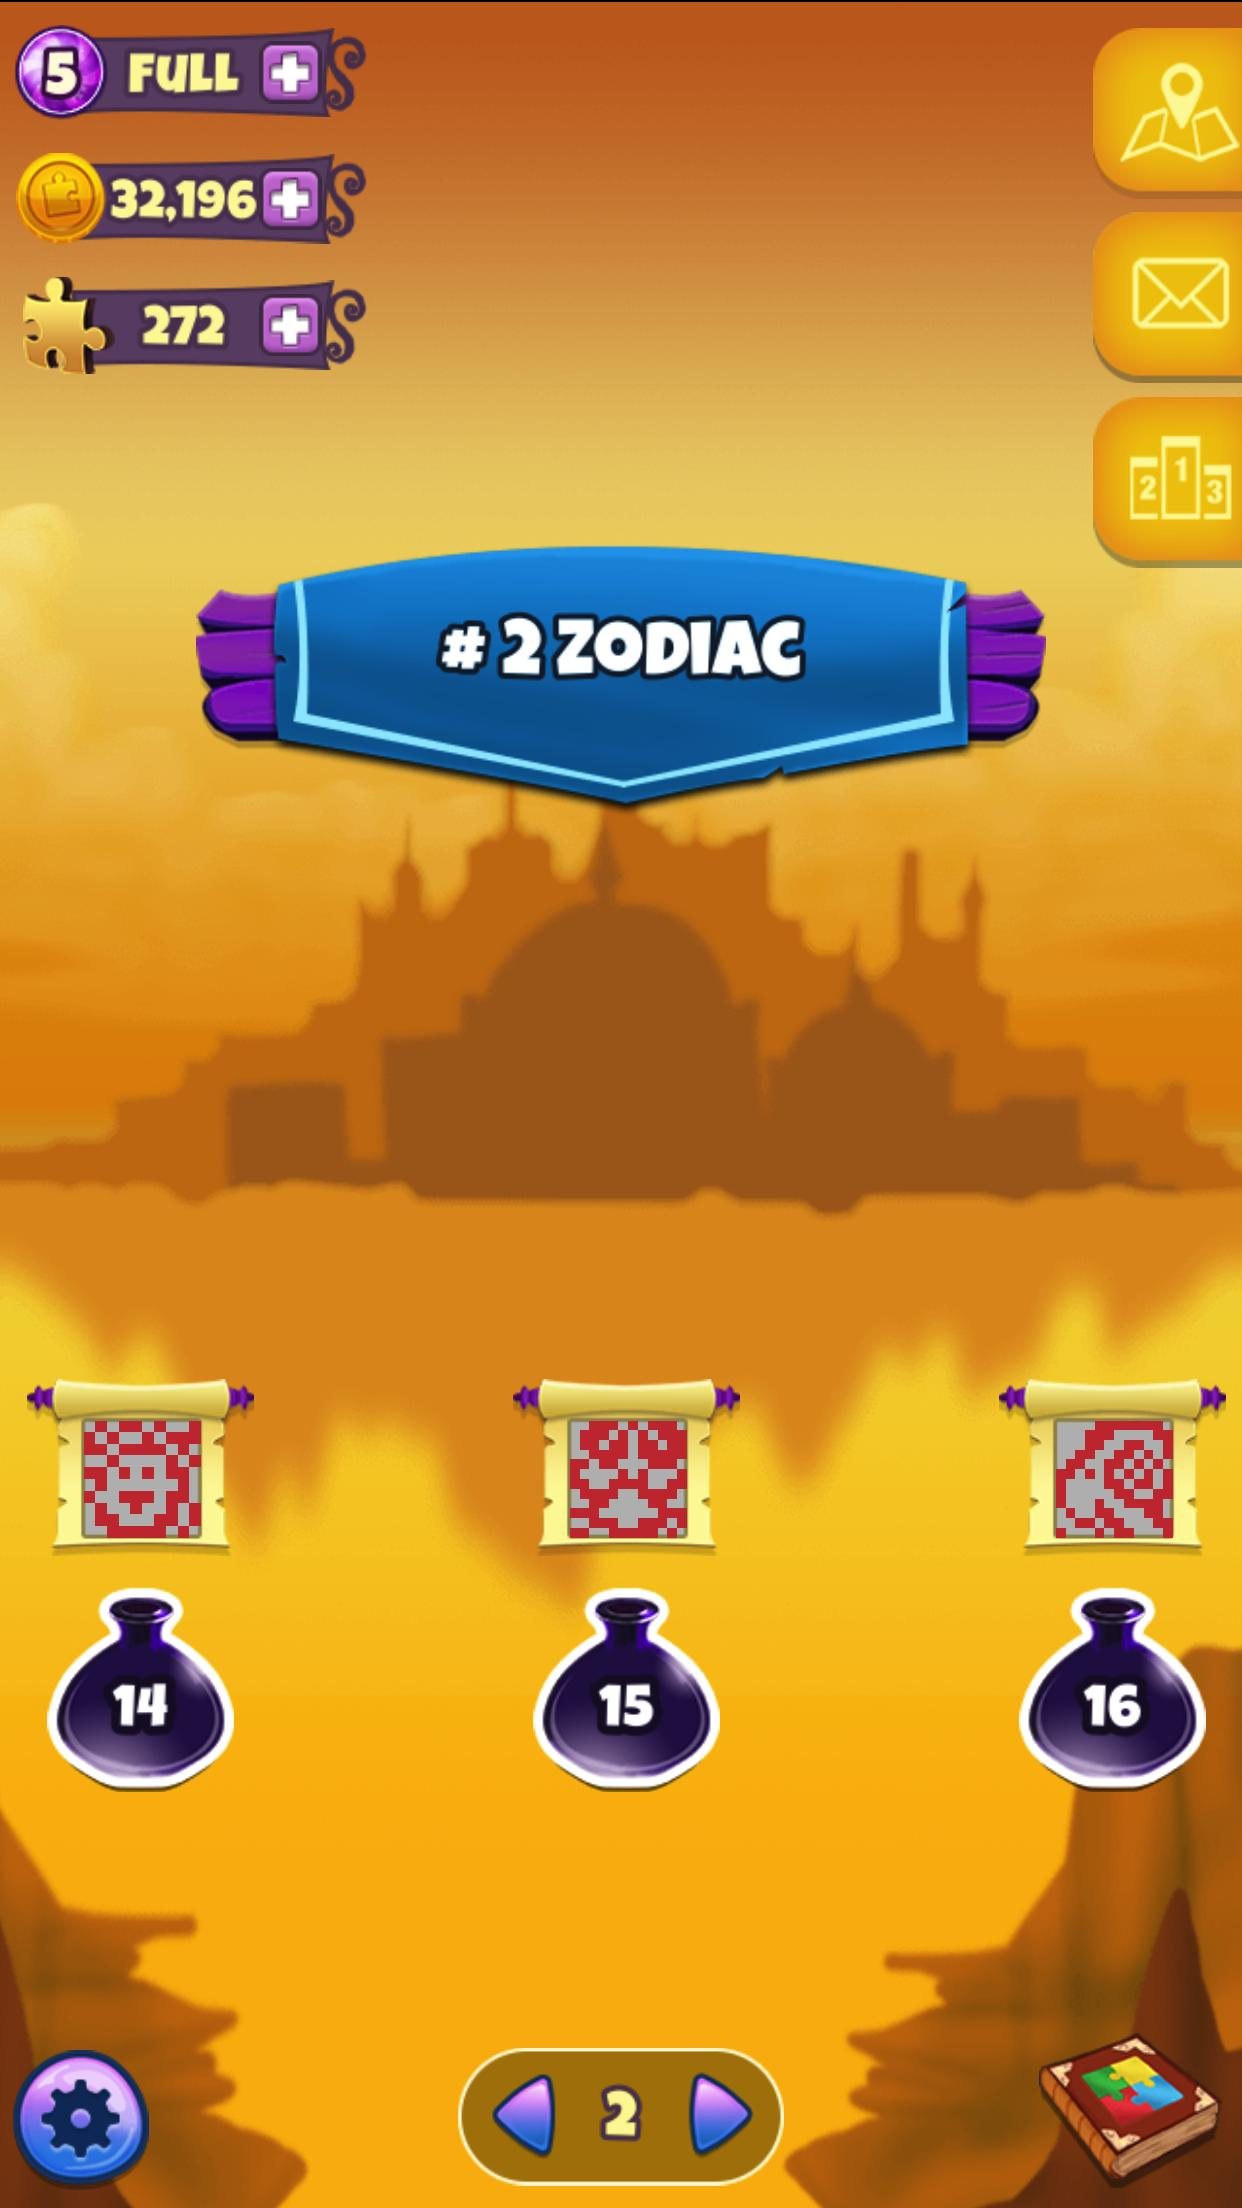 The Mystic Puzzland - Griddlers & Nonogram Puzzles 1.0.26 Screenshot 5